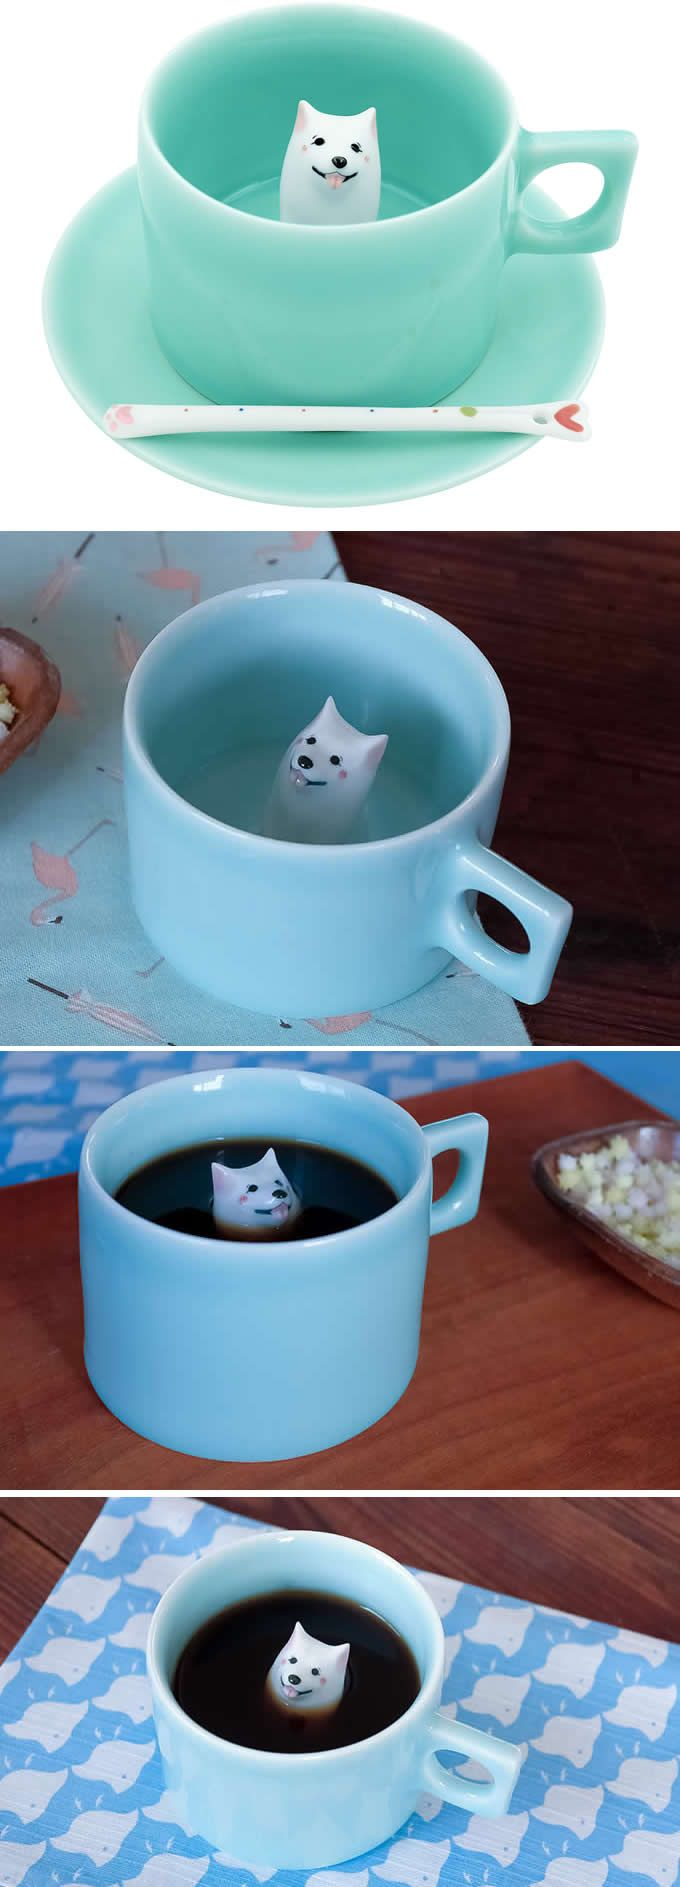 Dog Figurine Ceramic Coffee Cup(Samoyed )